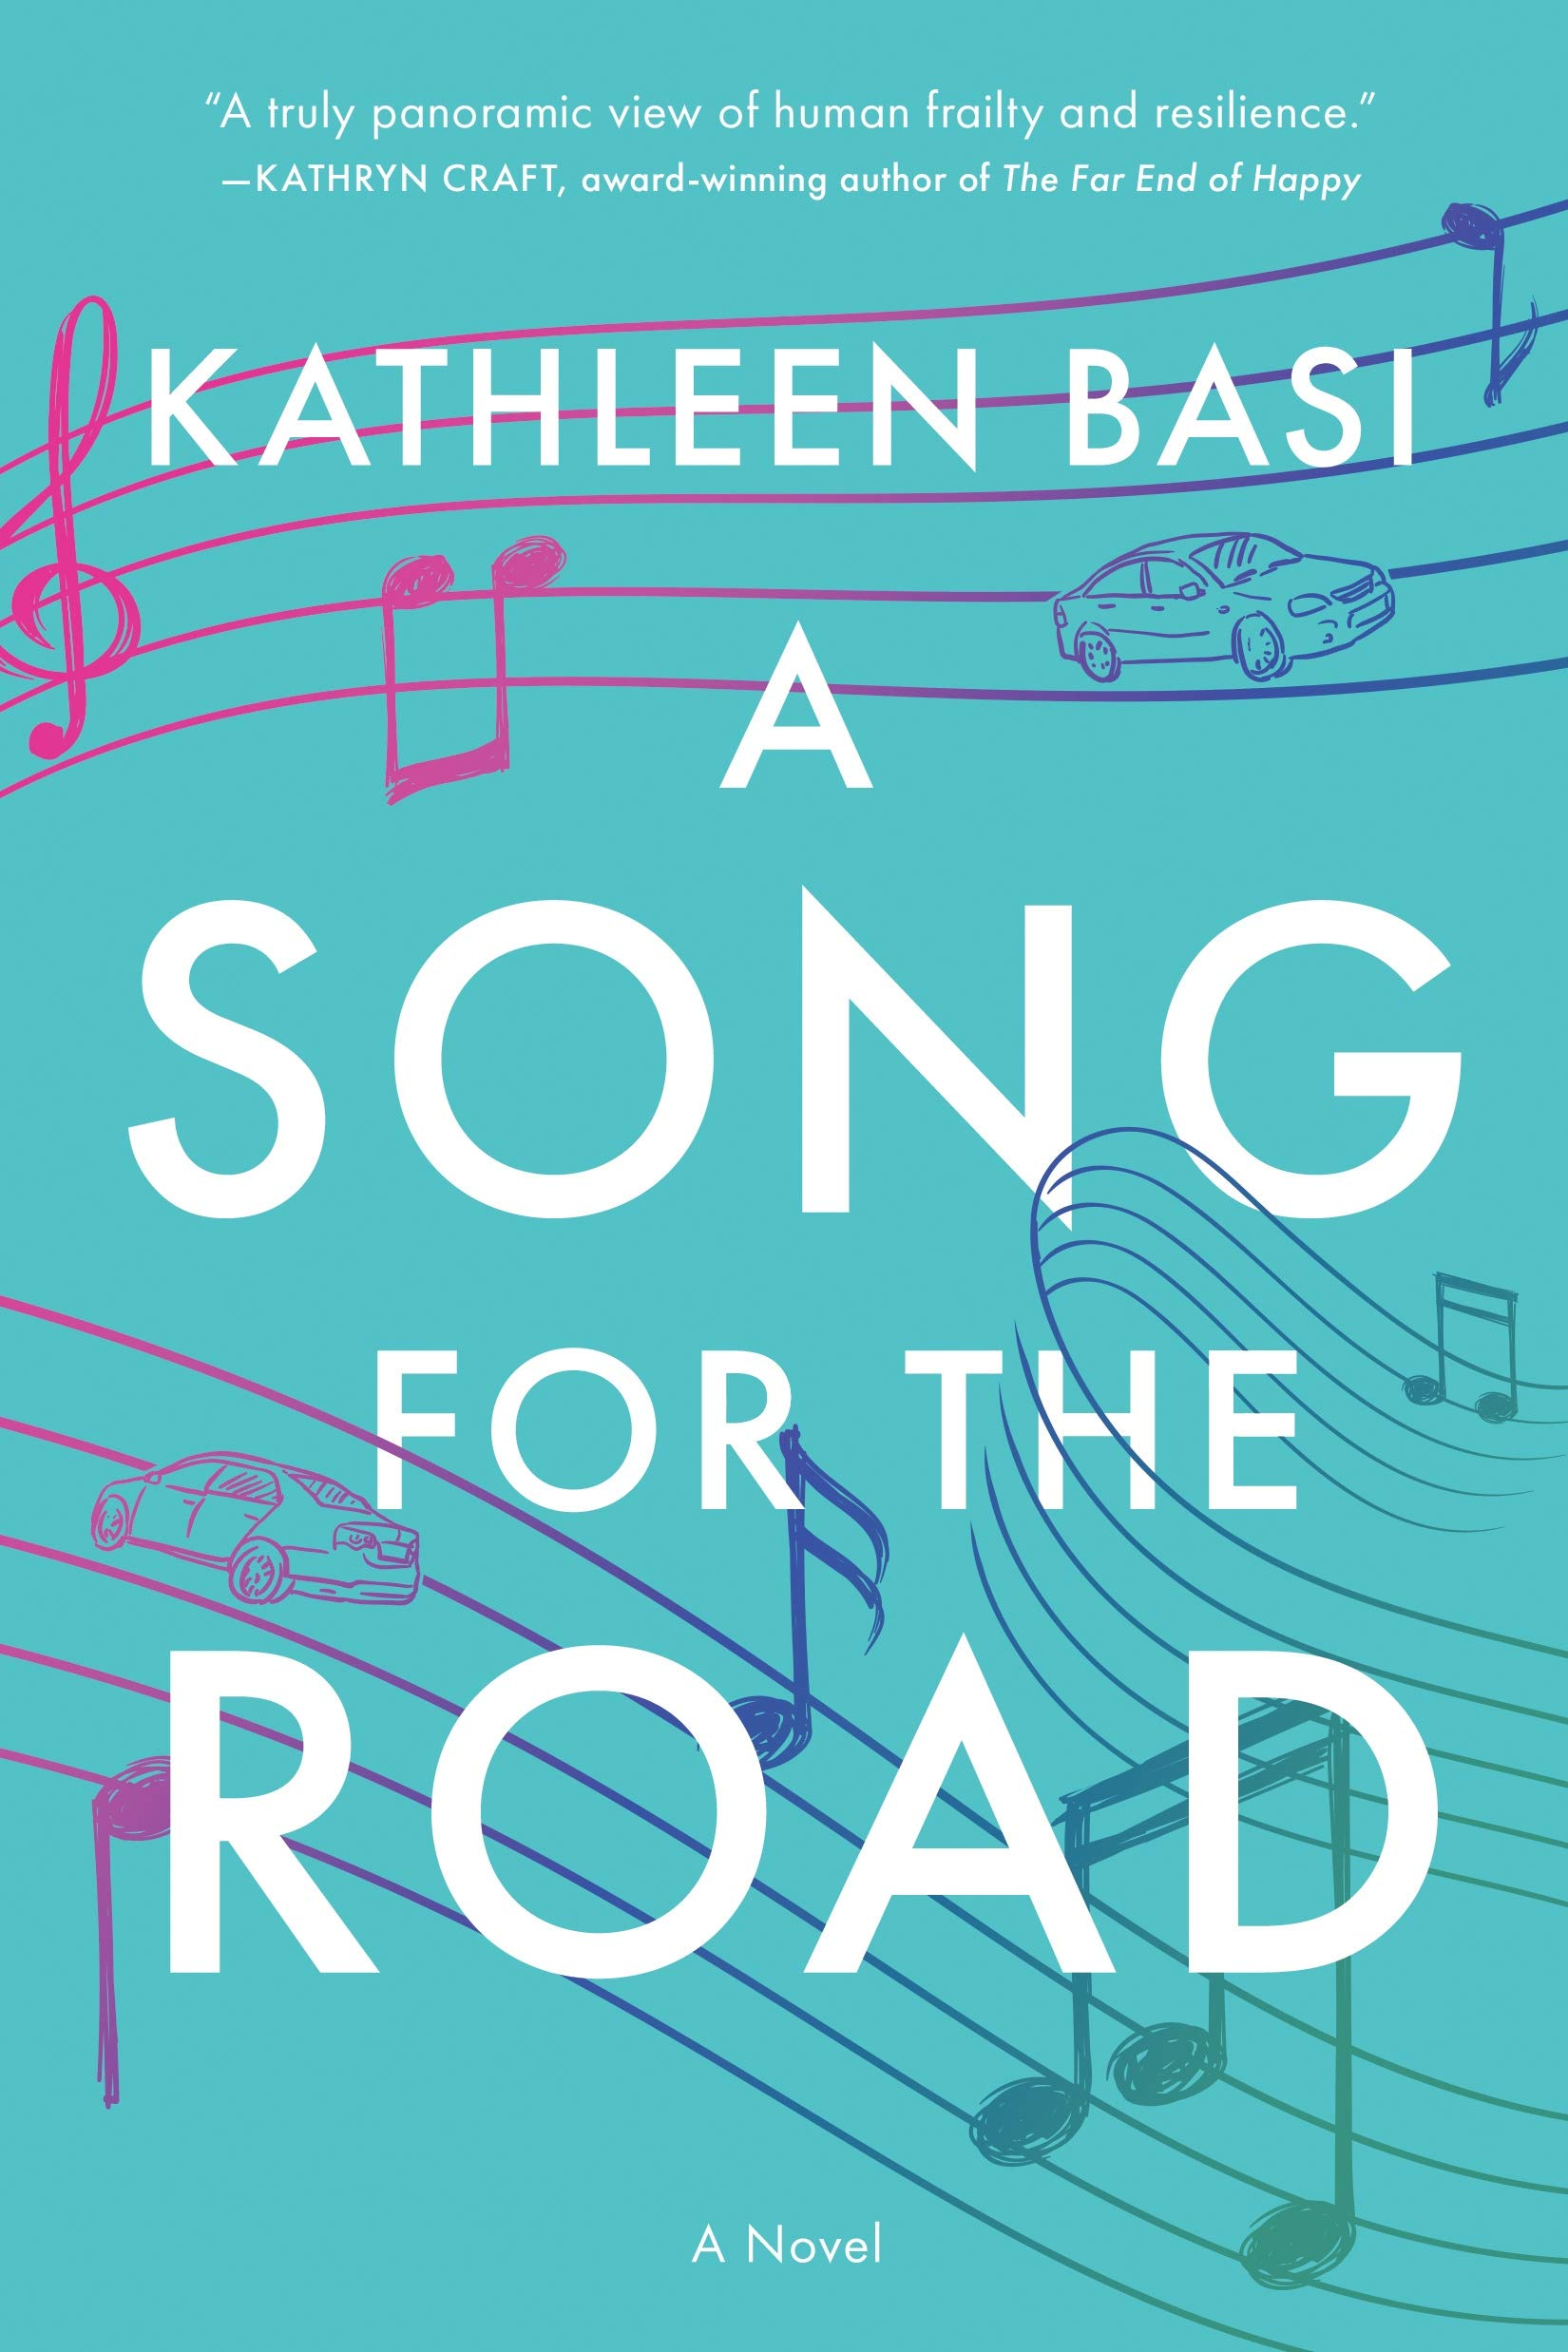 A Song for the Road: A Novel: Kathleen M. Basi: 9781643856902: Amazon.com: Books